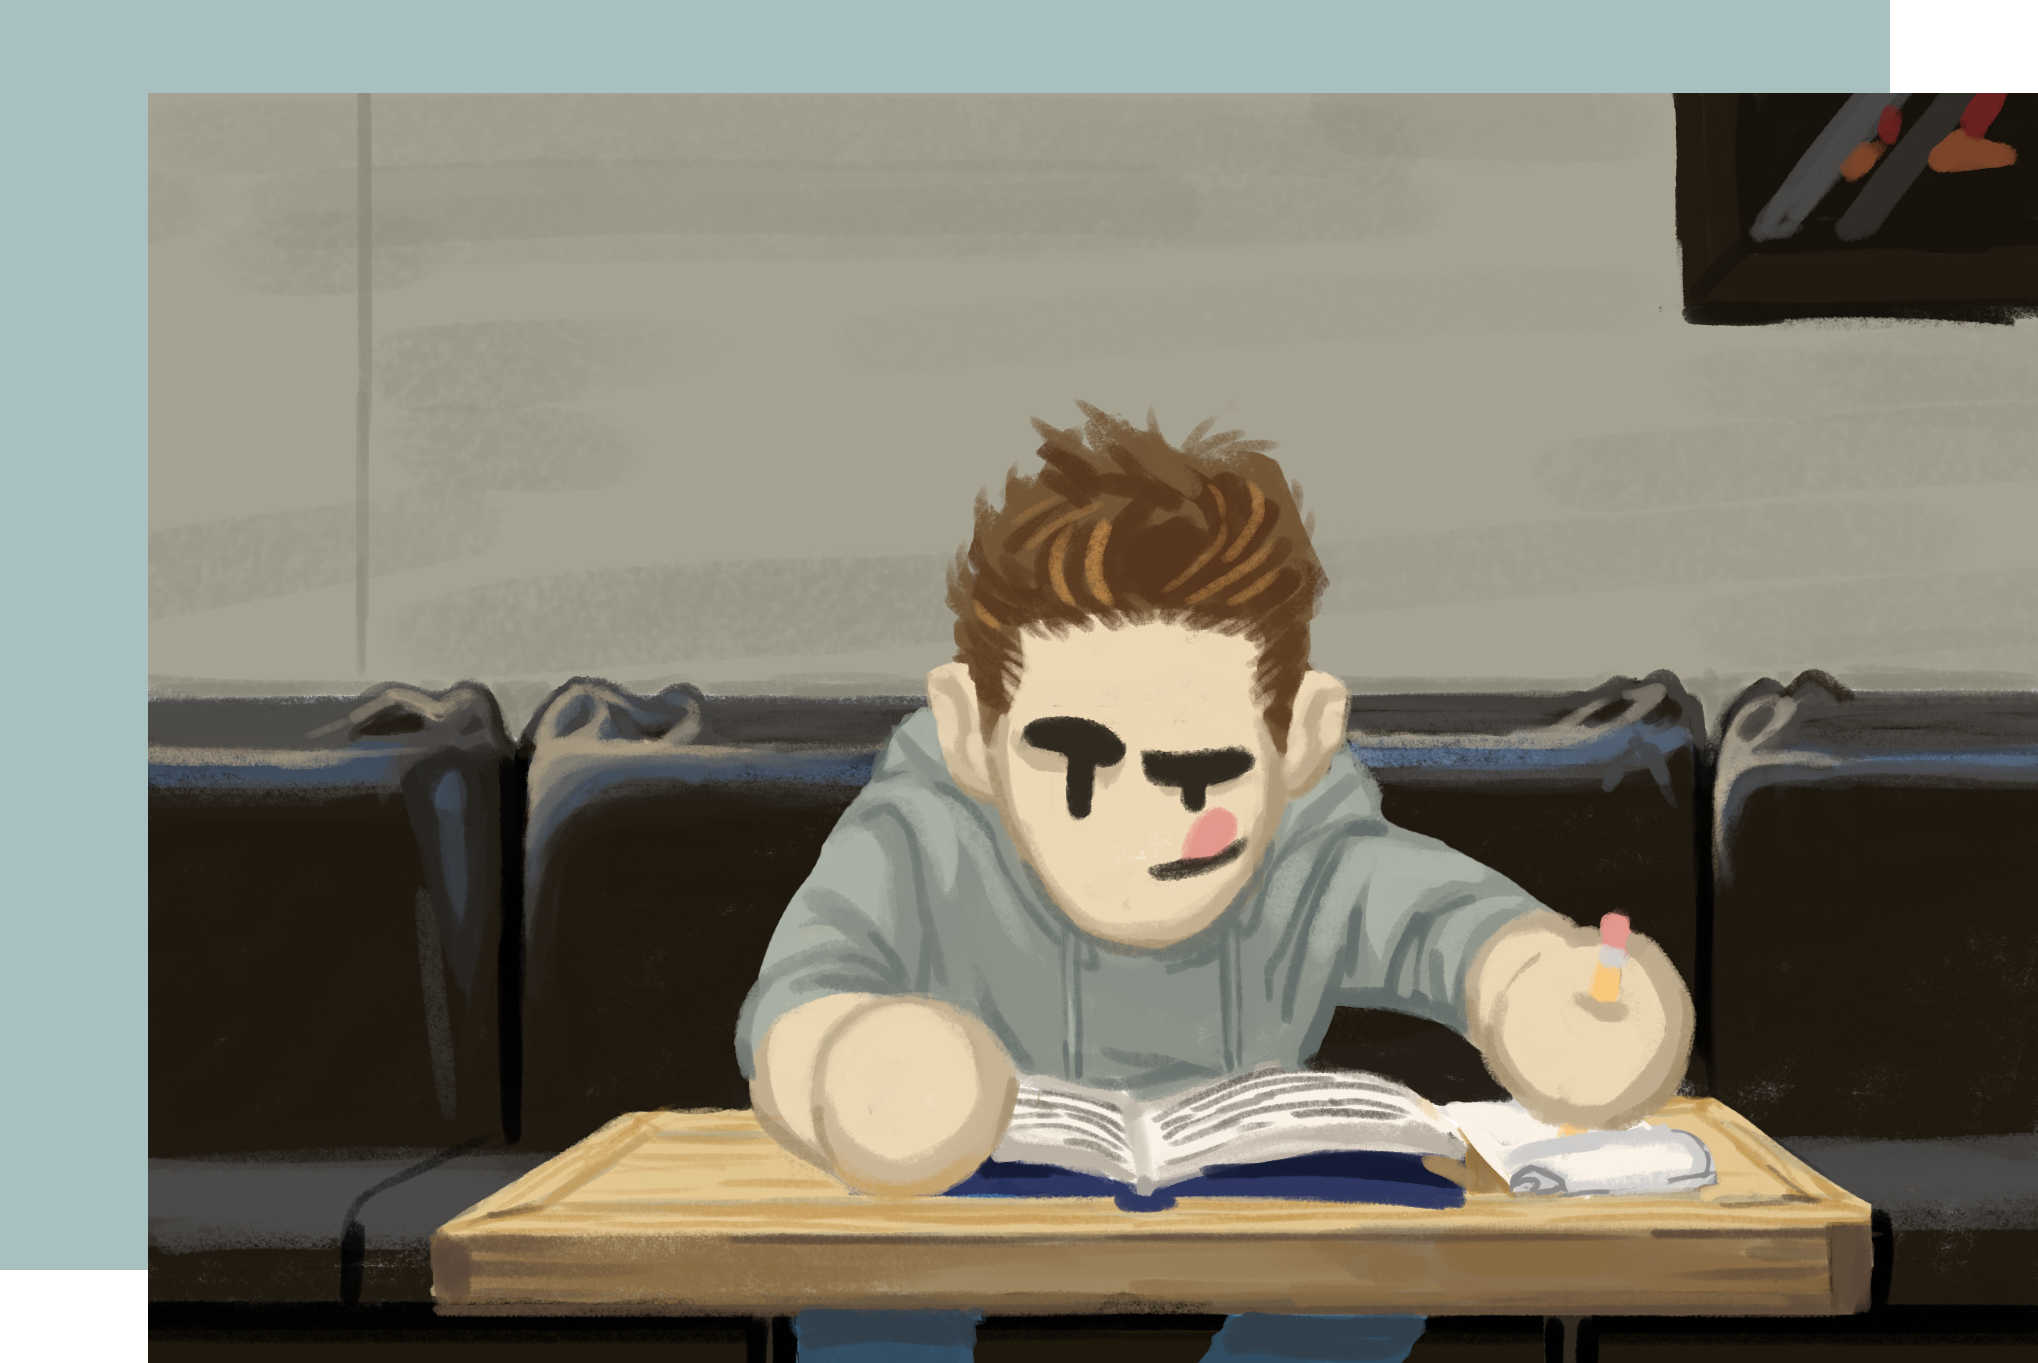 Guy on couch with book taking notes